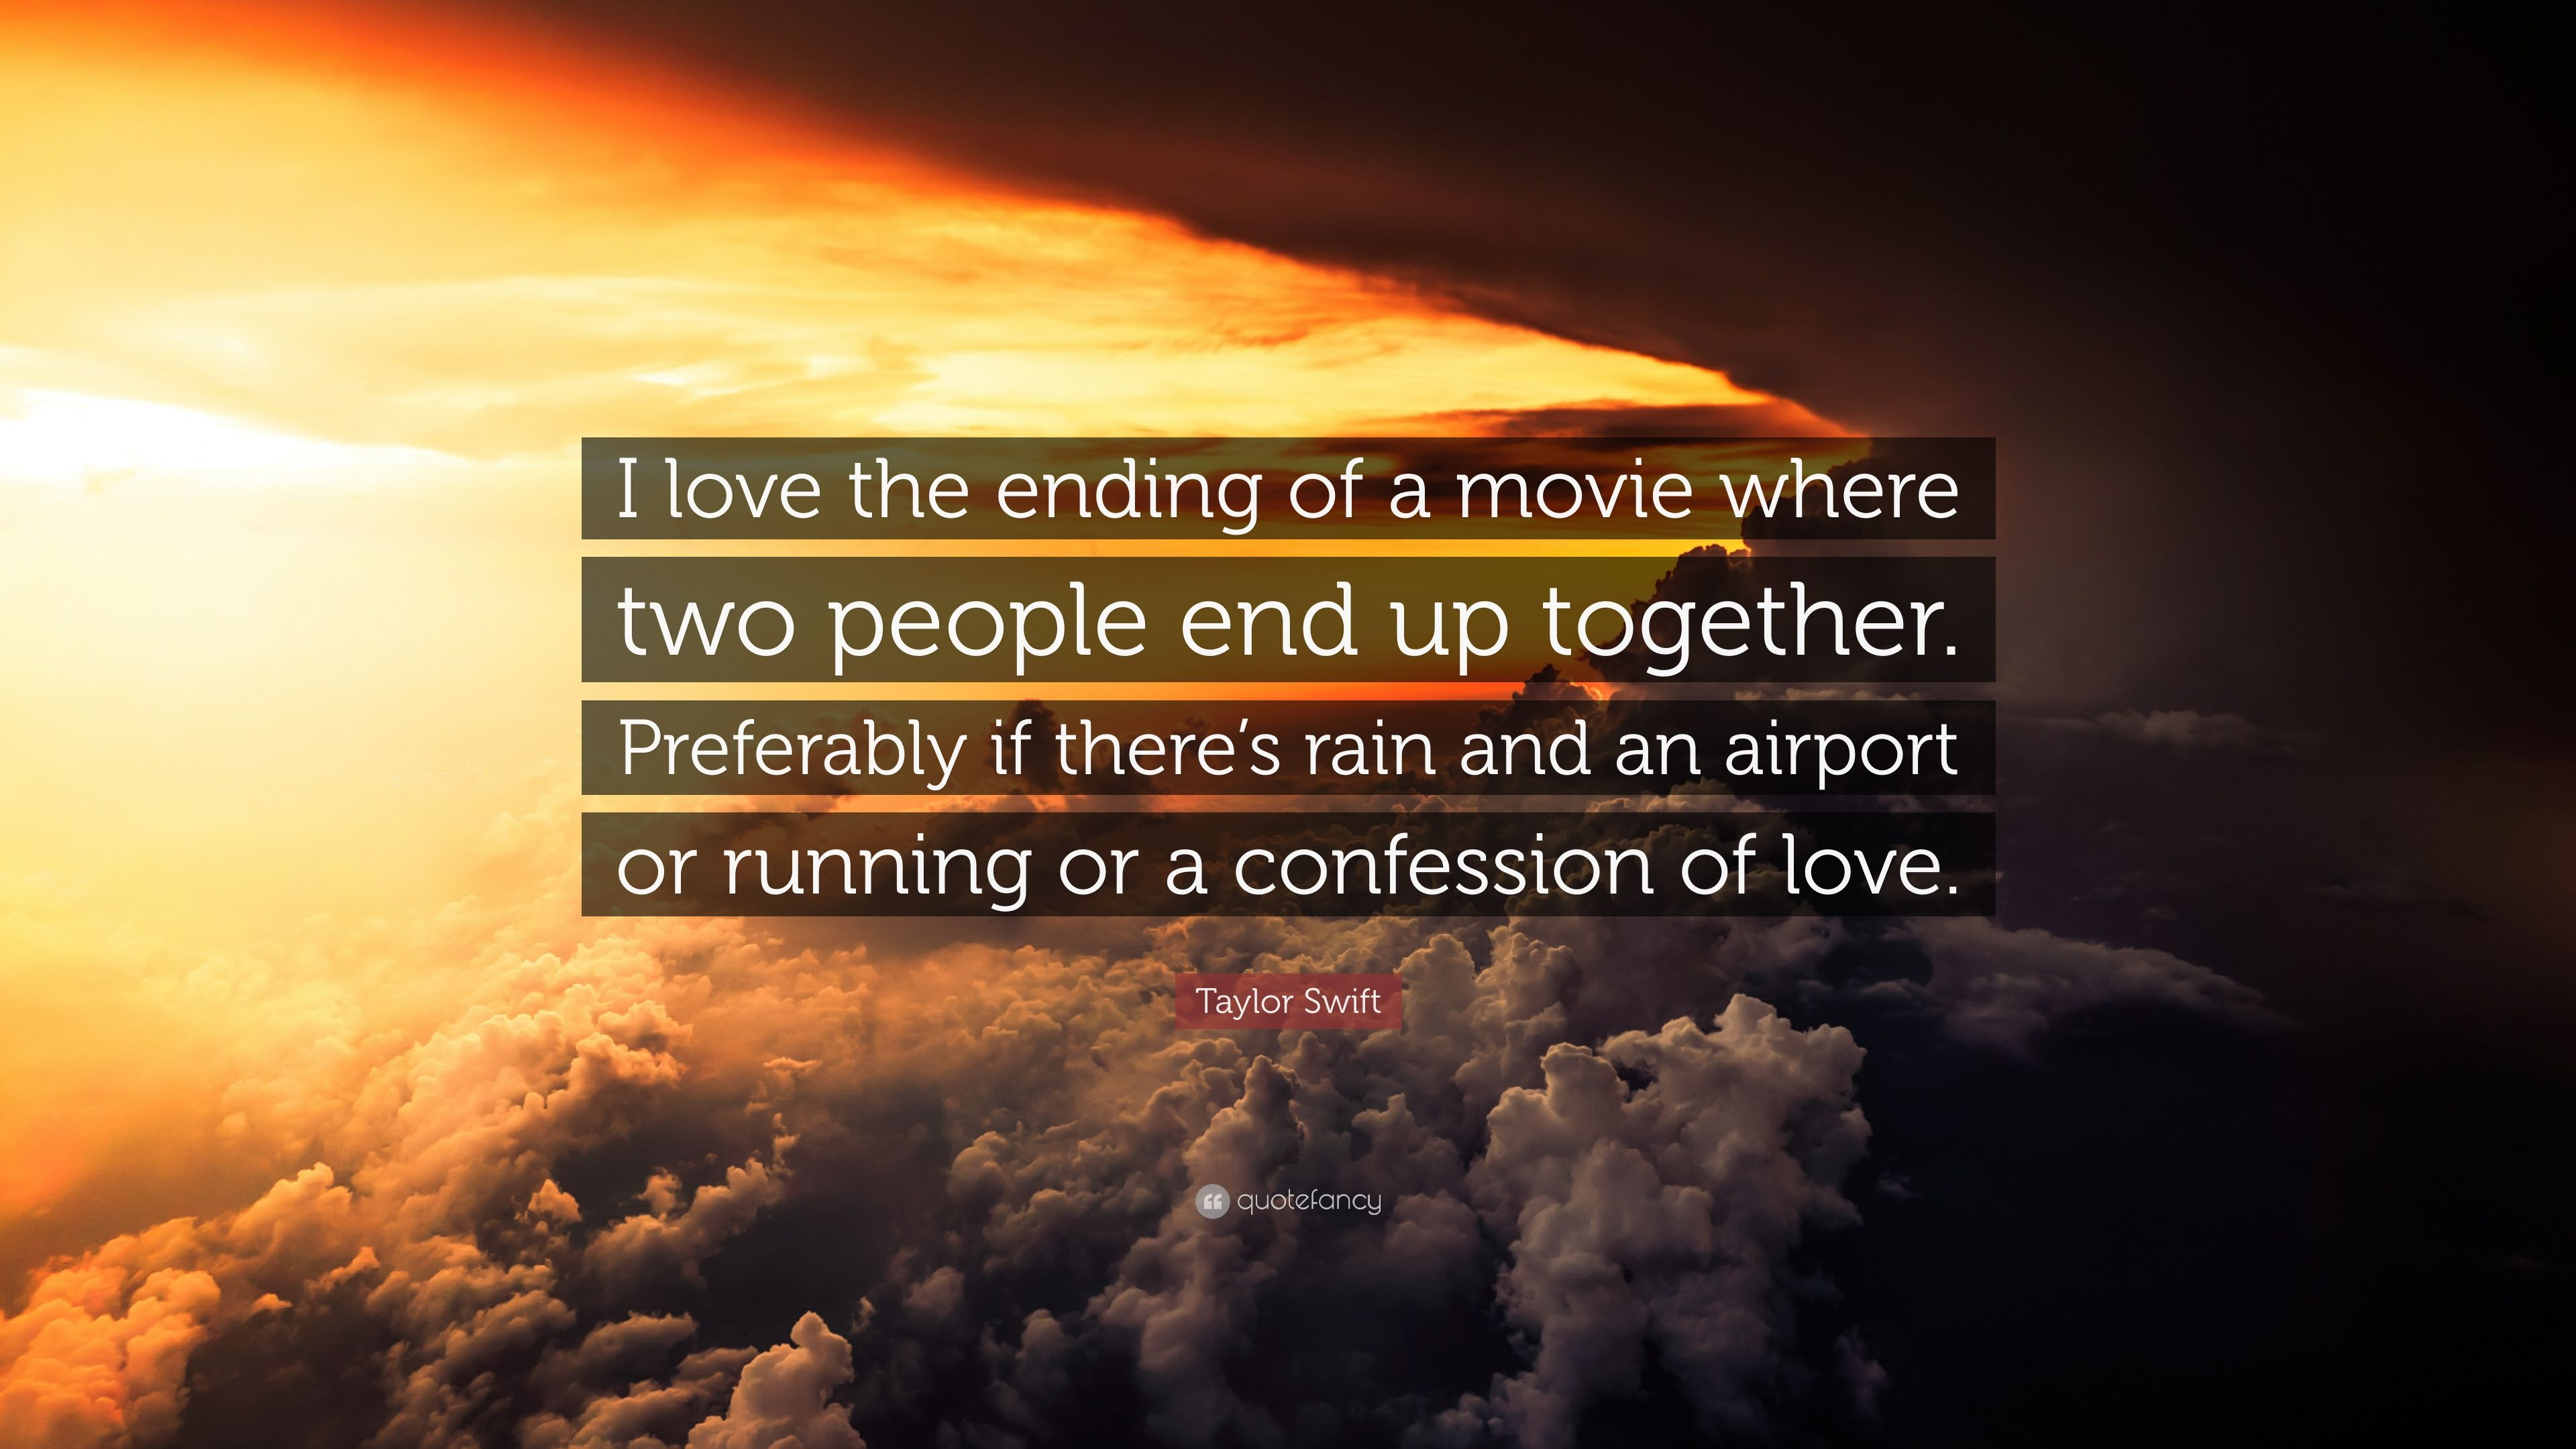 Taylor Swift Quote I Love The Ending Of A Movie Where Two People End Up Together Preferably If There S Rain And An Airport Or Running Or A 7 Wallpapers Quotefancy